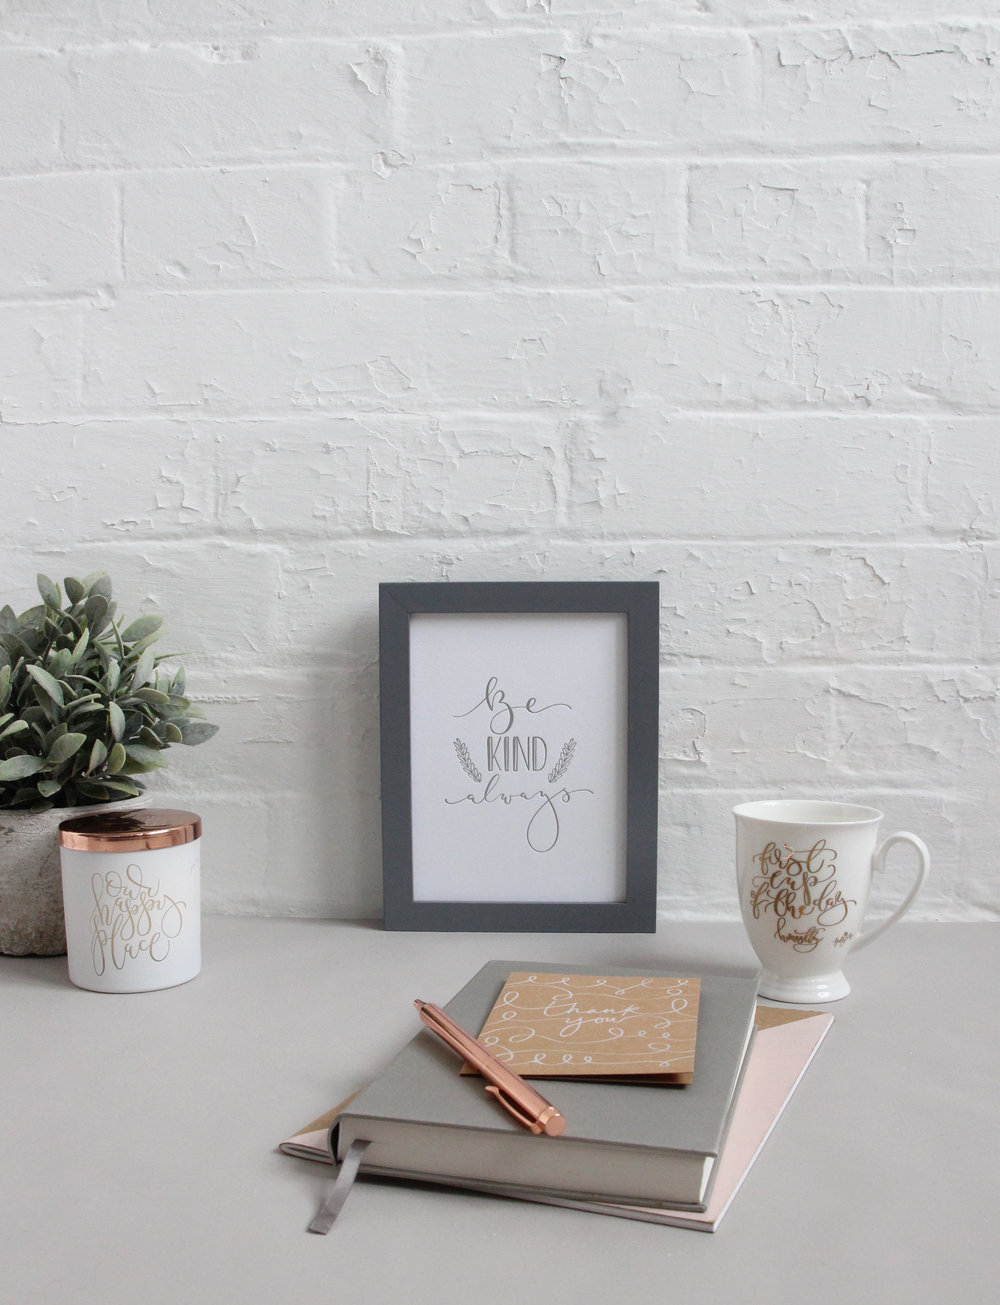 Copy of Home and Interiors accessories, mugs, prints, calligraphy and candles